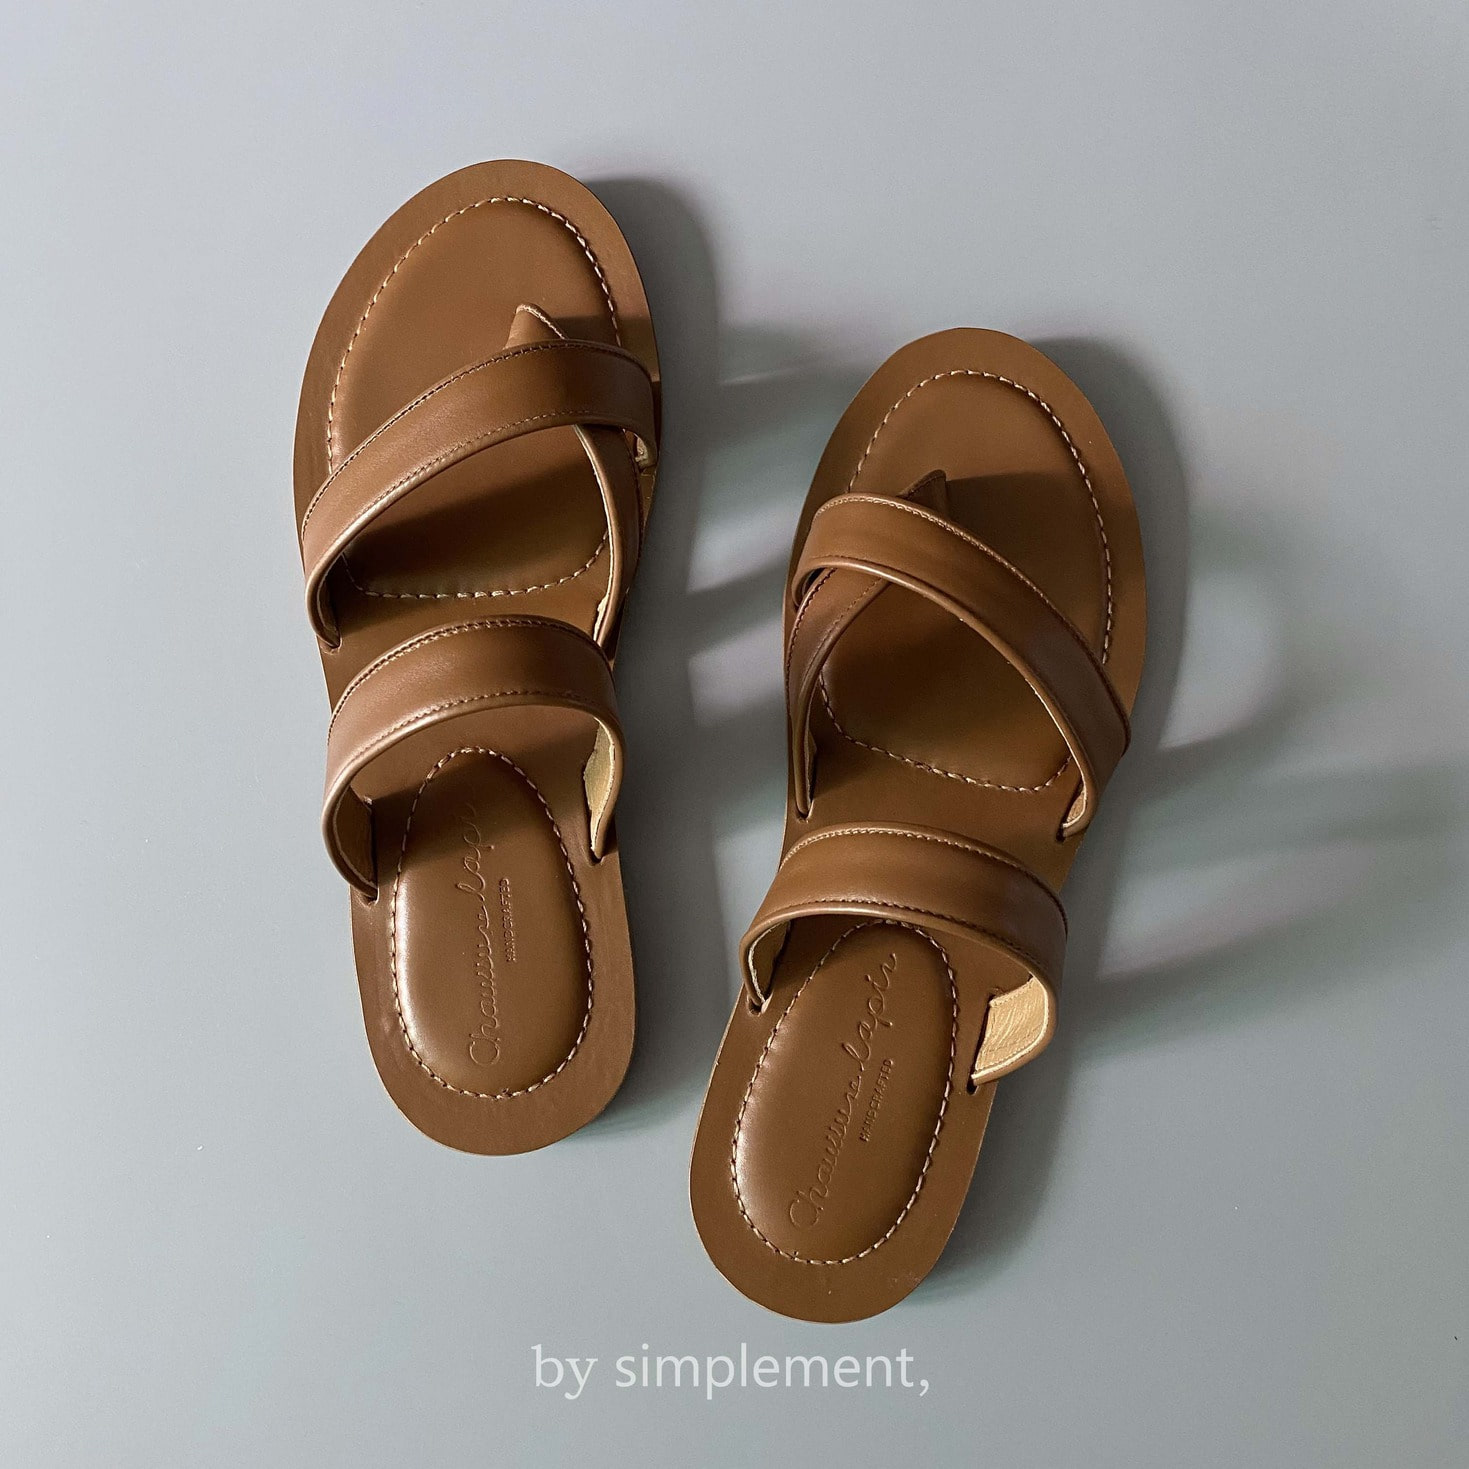 Utile Sandal by simplement, in Brown